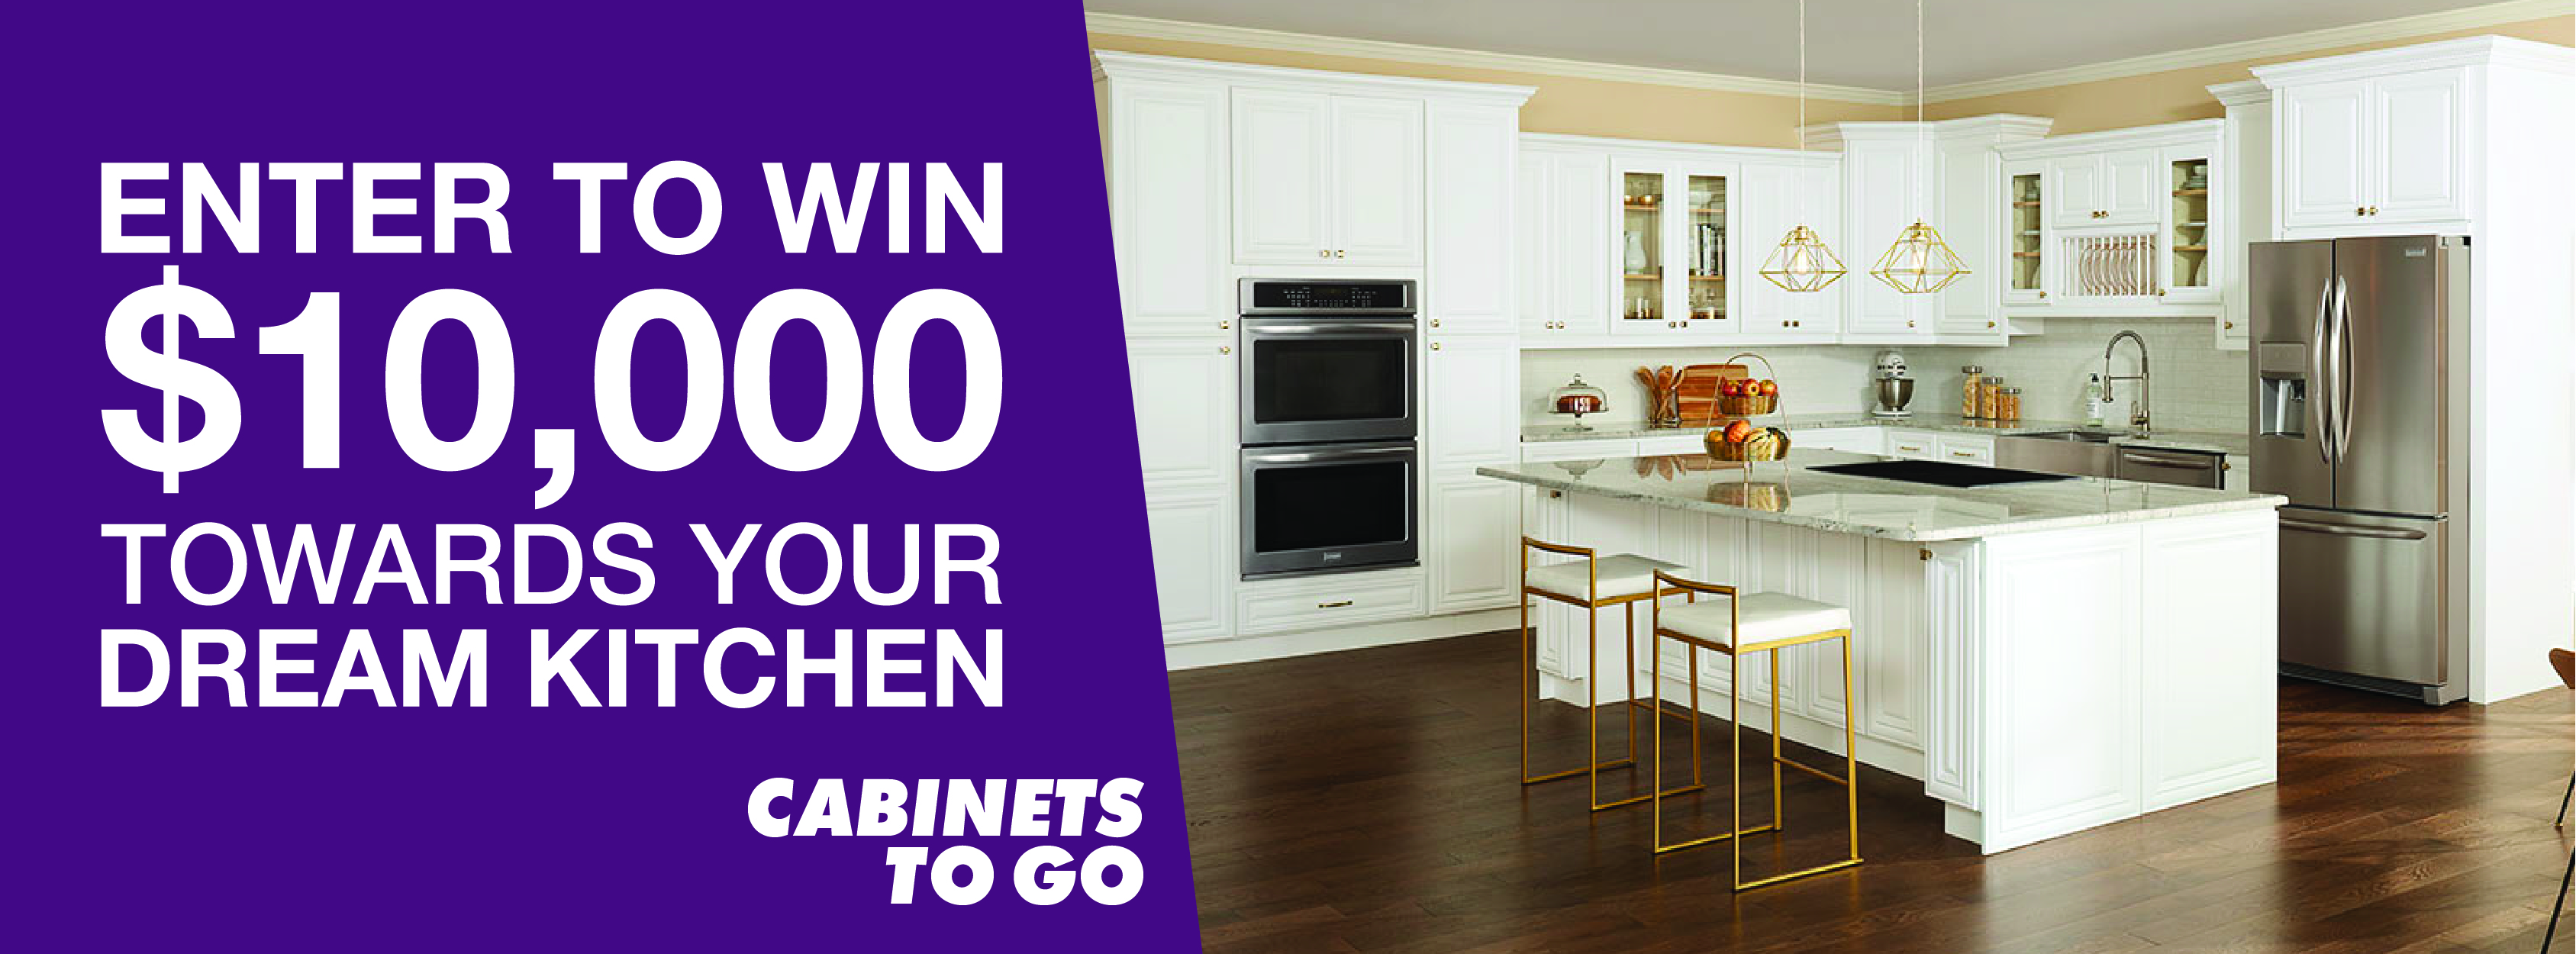 Fall Kitchen Makeover Sweepstakes - Kitchen remodeling contest